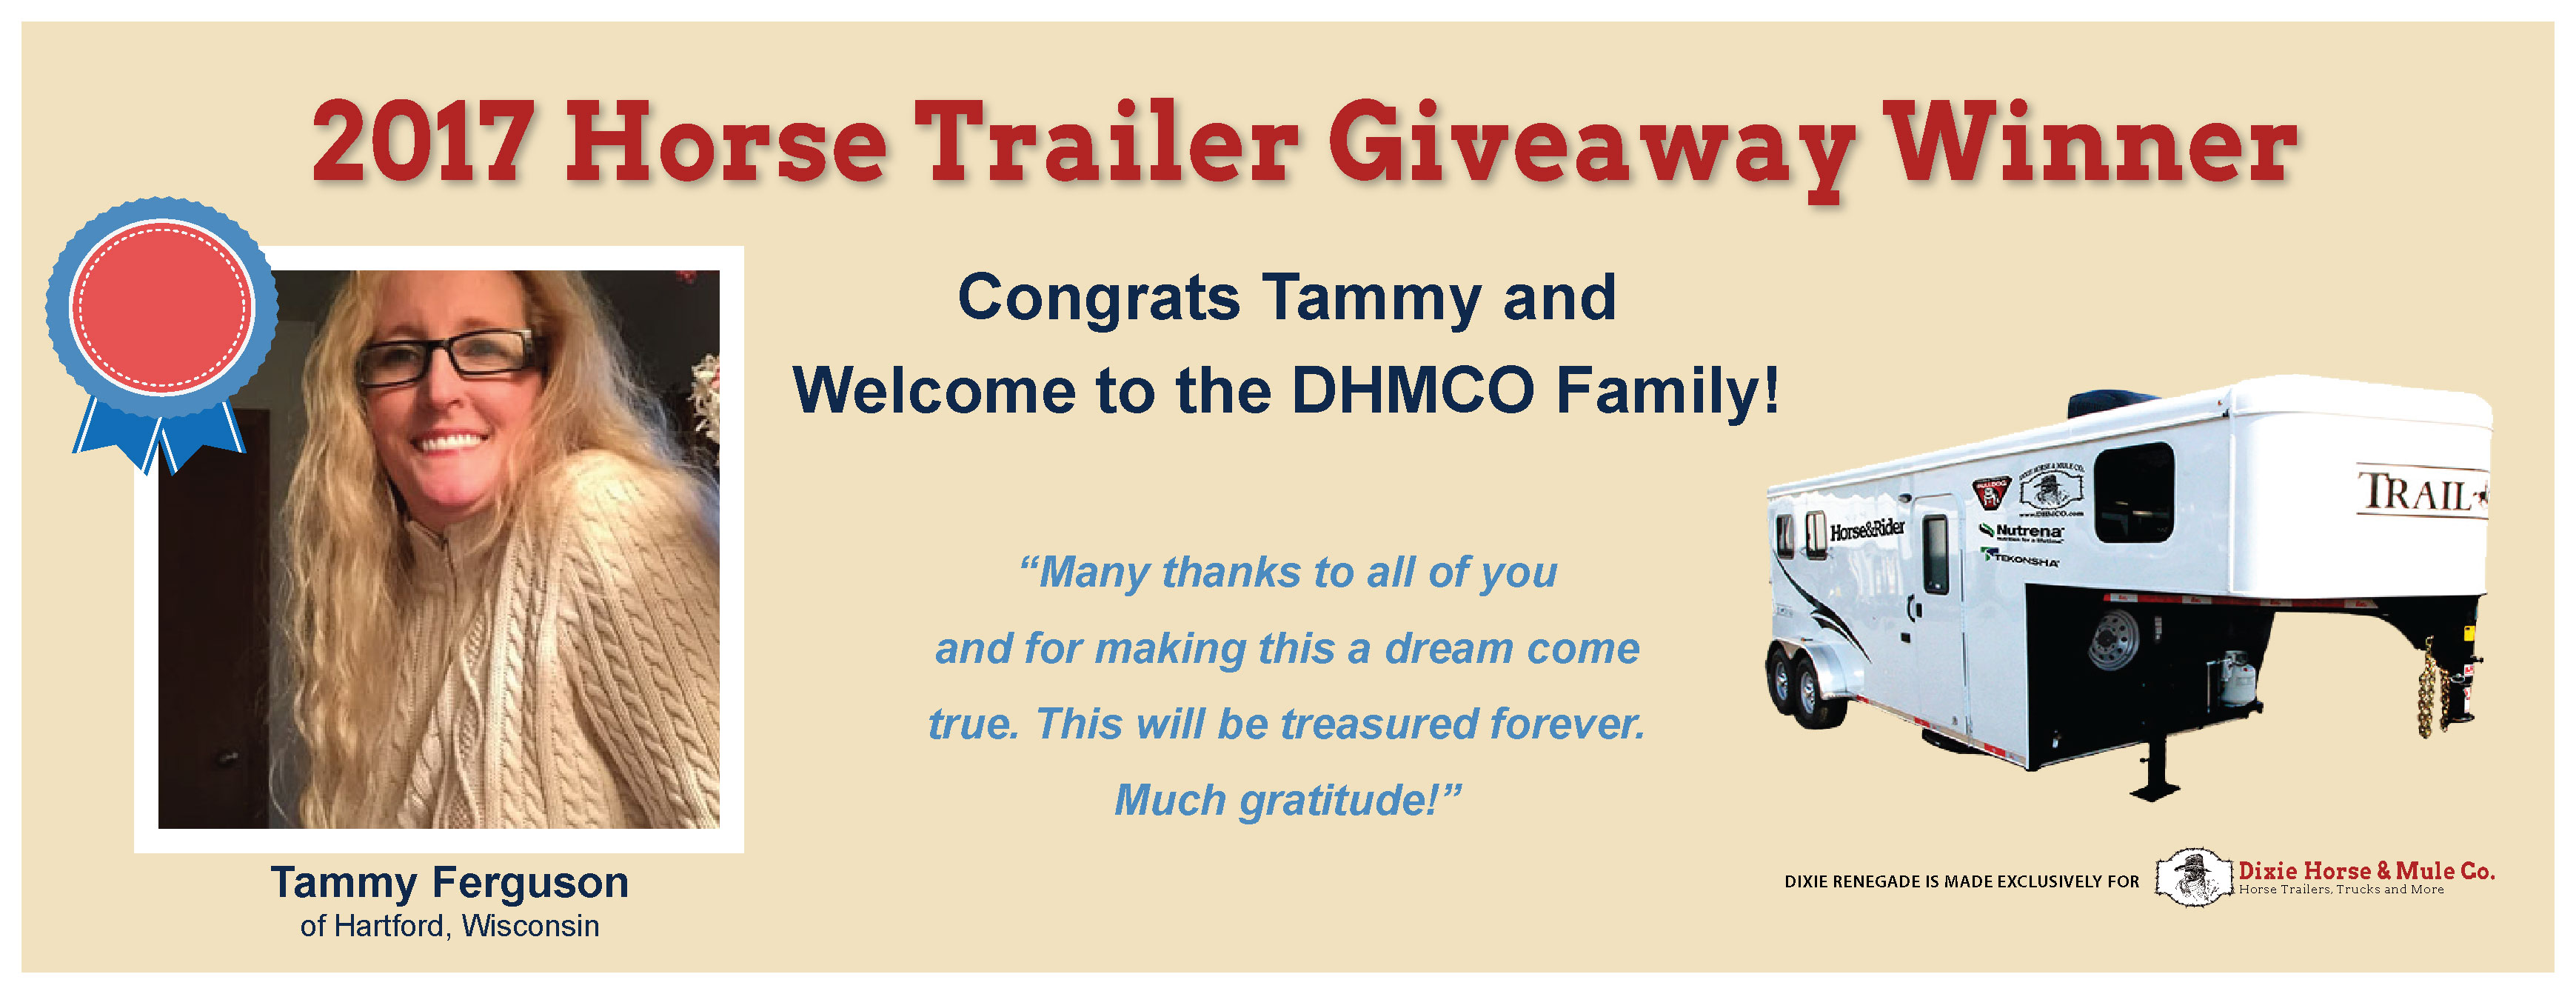 DHM_Giveaway Image_Winner_Blog